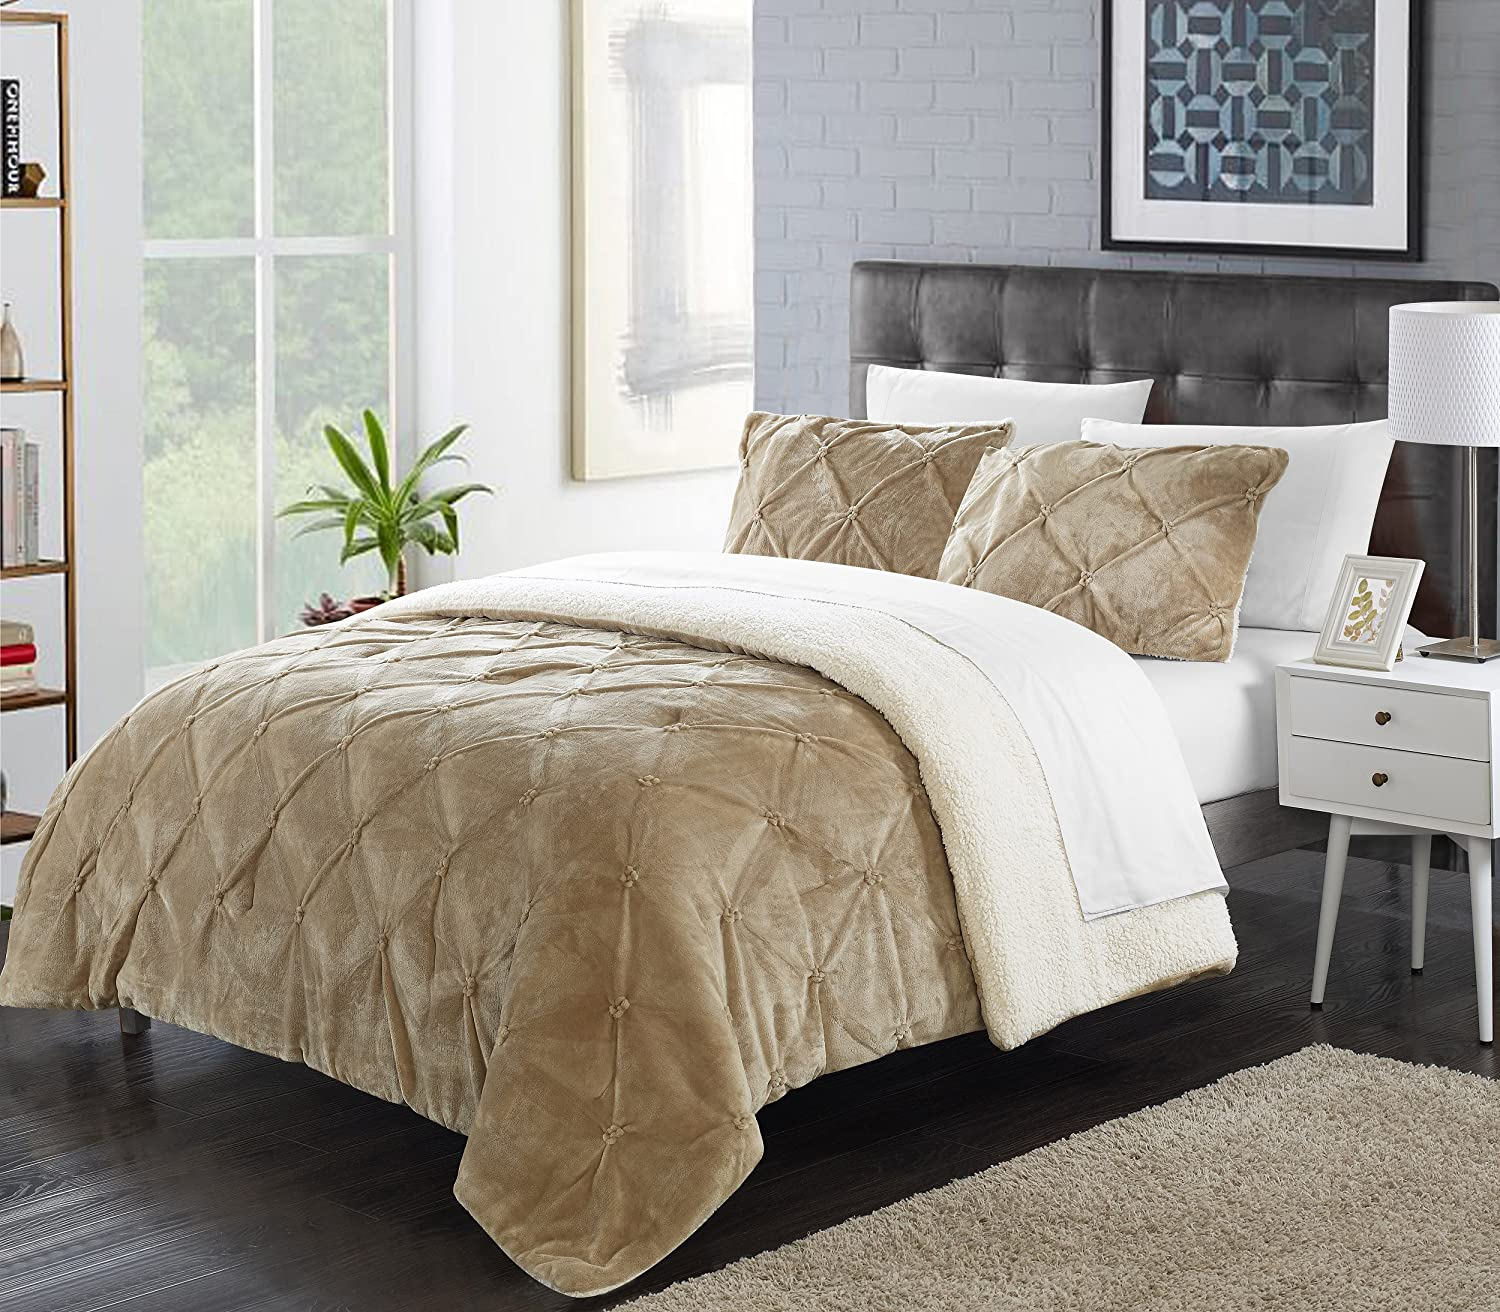 3 Piece Enzo Pinch Pleated Ruffled and Pintuck Sherpa Lined King Bed In a Bag Comforter Set Beige